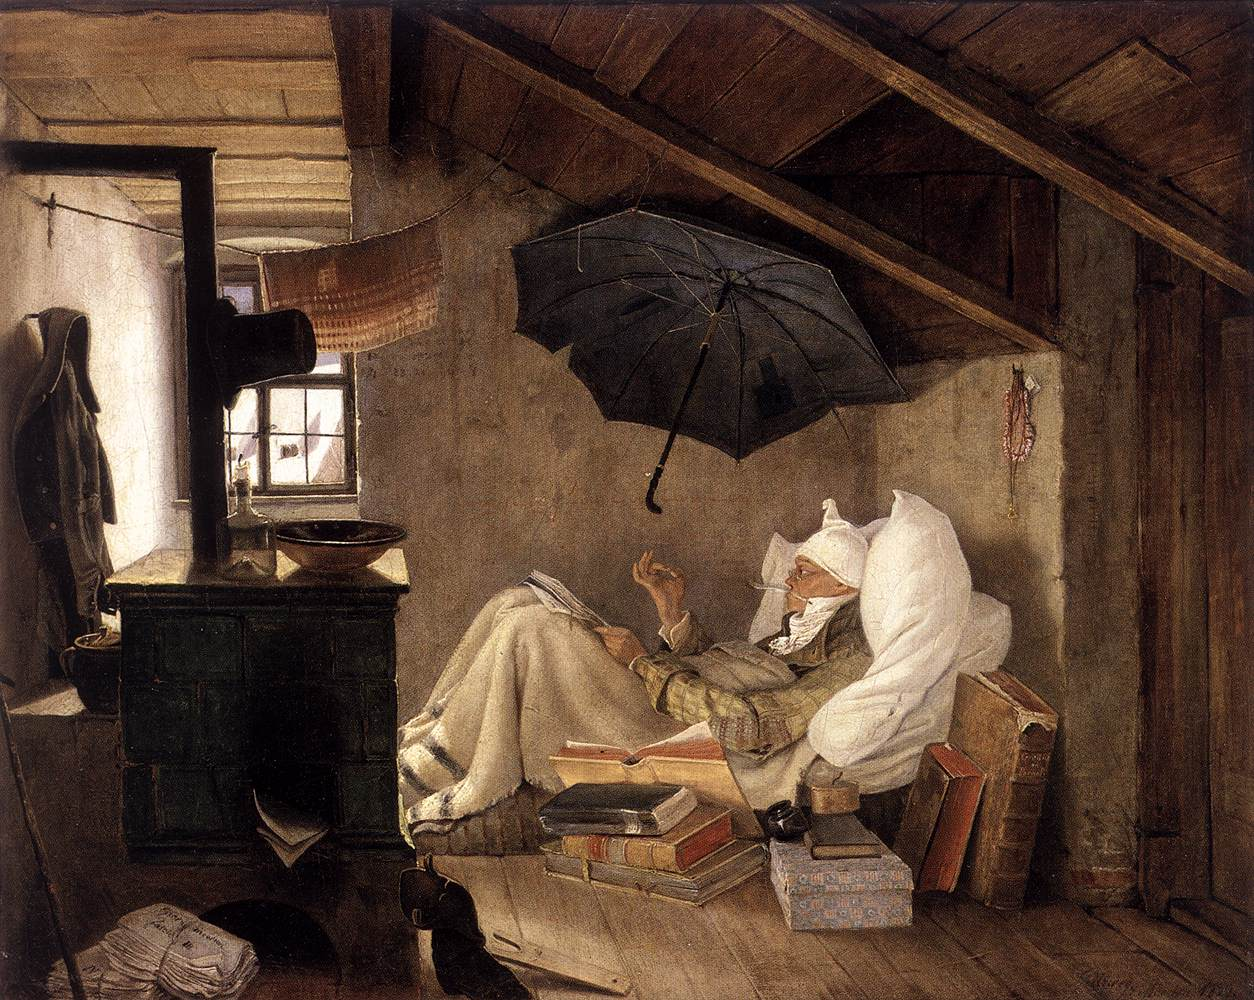 The Poor Poet (1839) by Carl Spitzweg